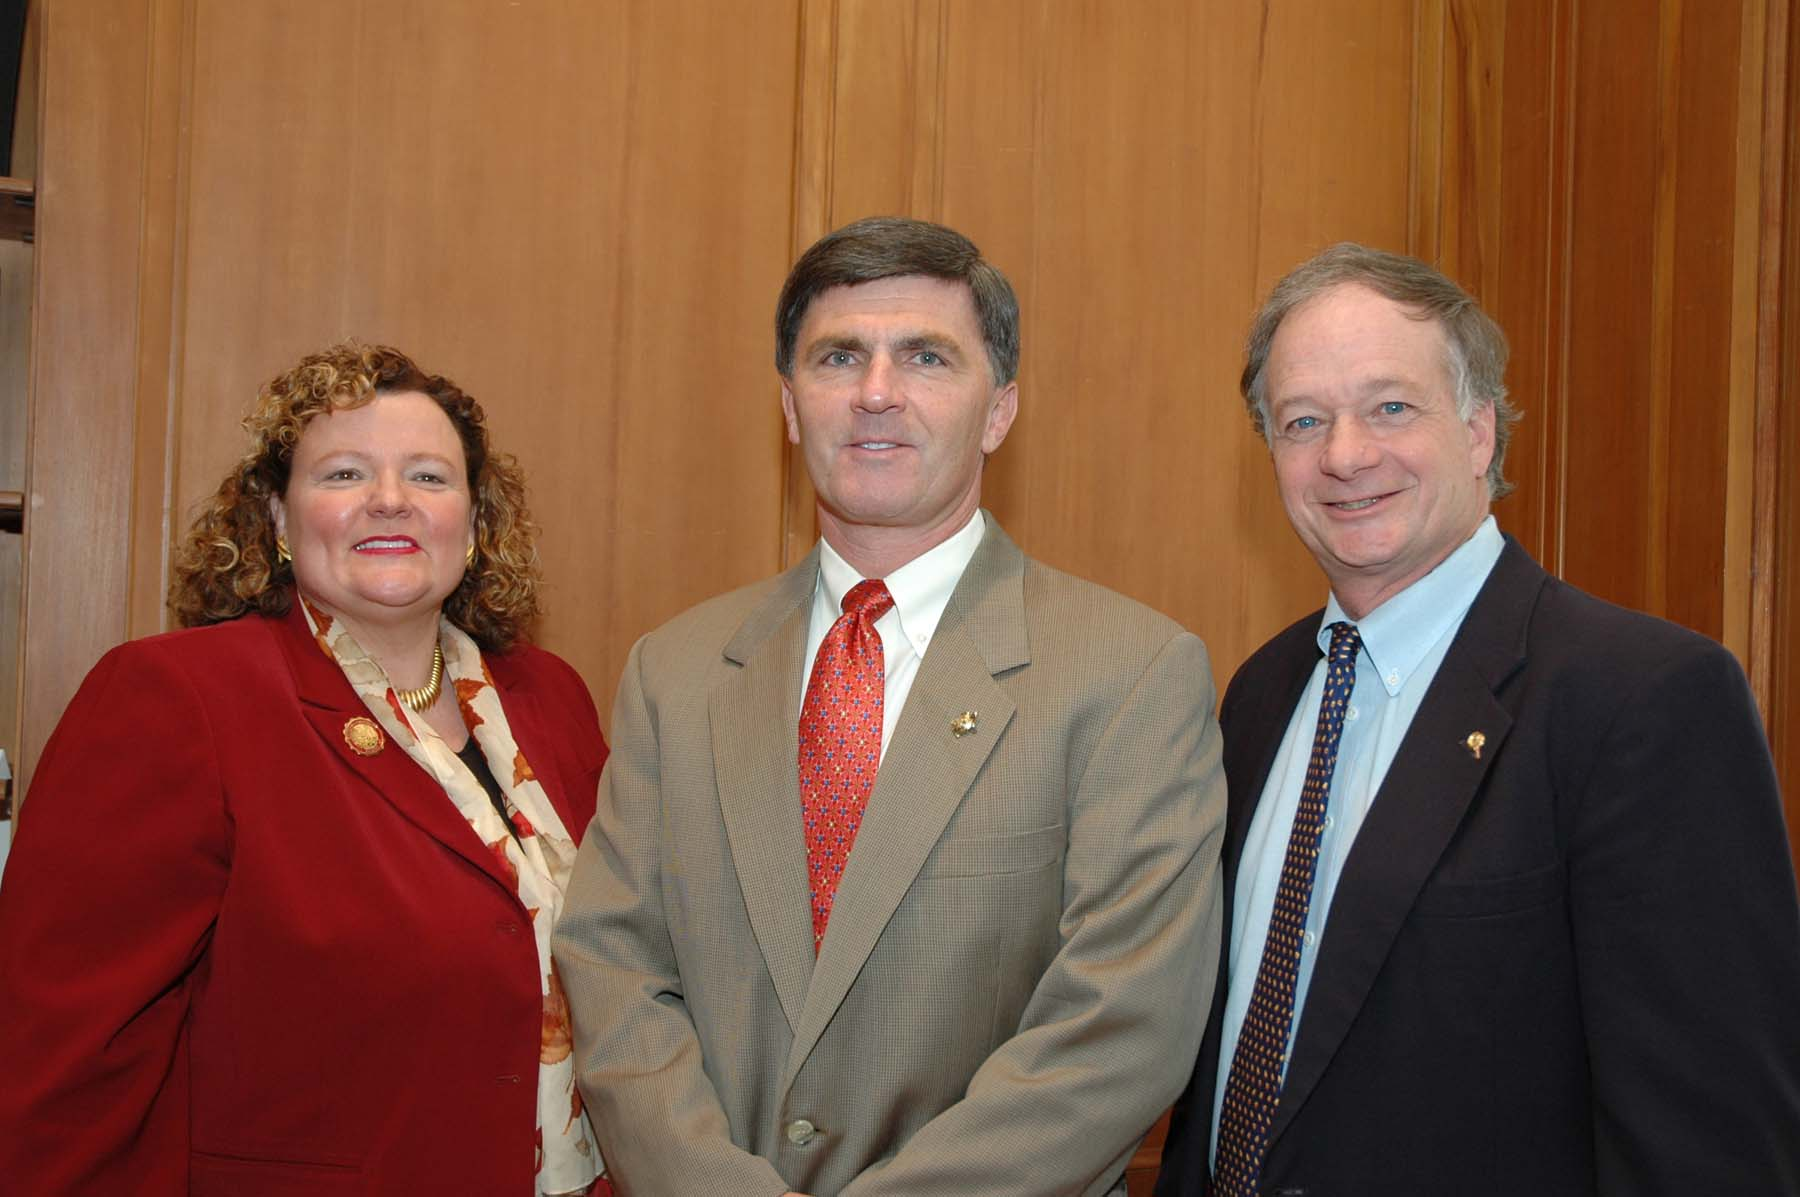 SU President Dr. Janet Dudley-Eschbach, Governor Robert L. Ehrlich Jr., and Jim Perdue